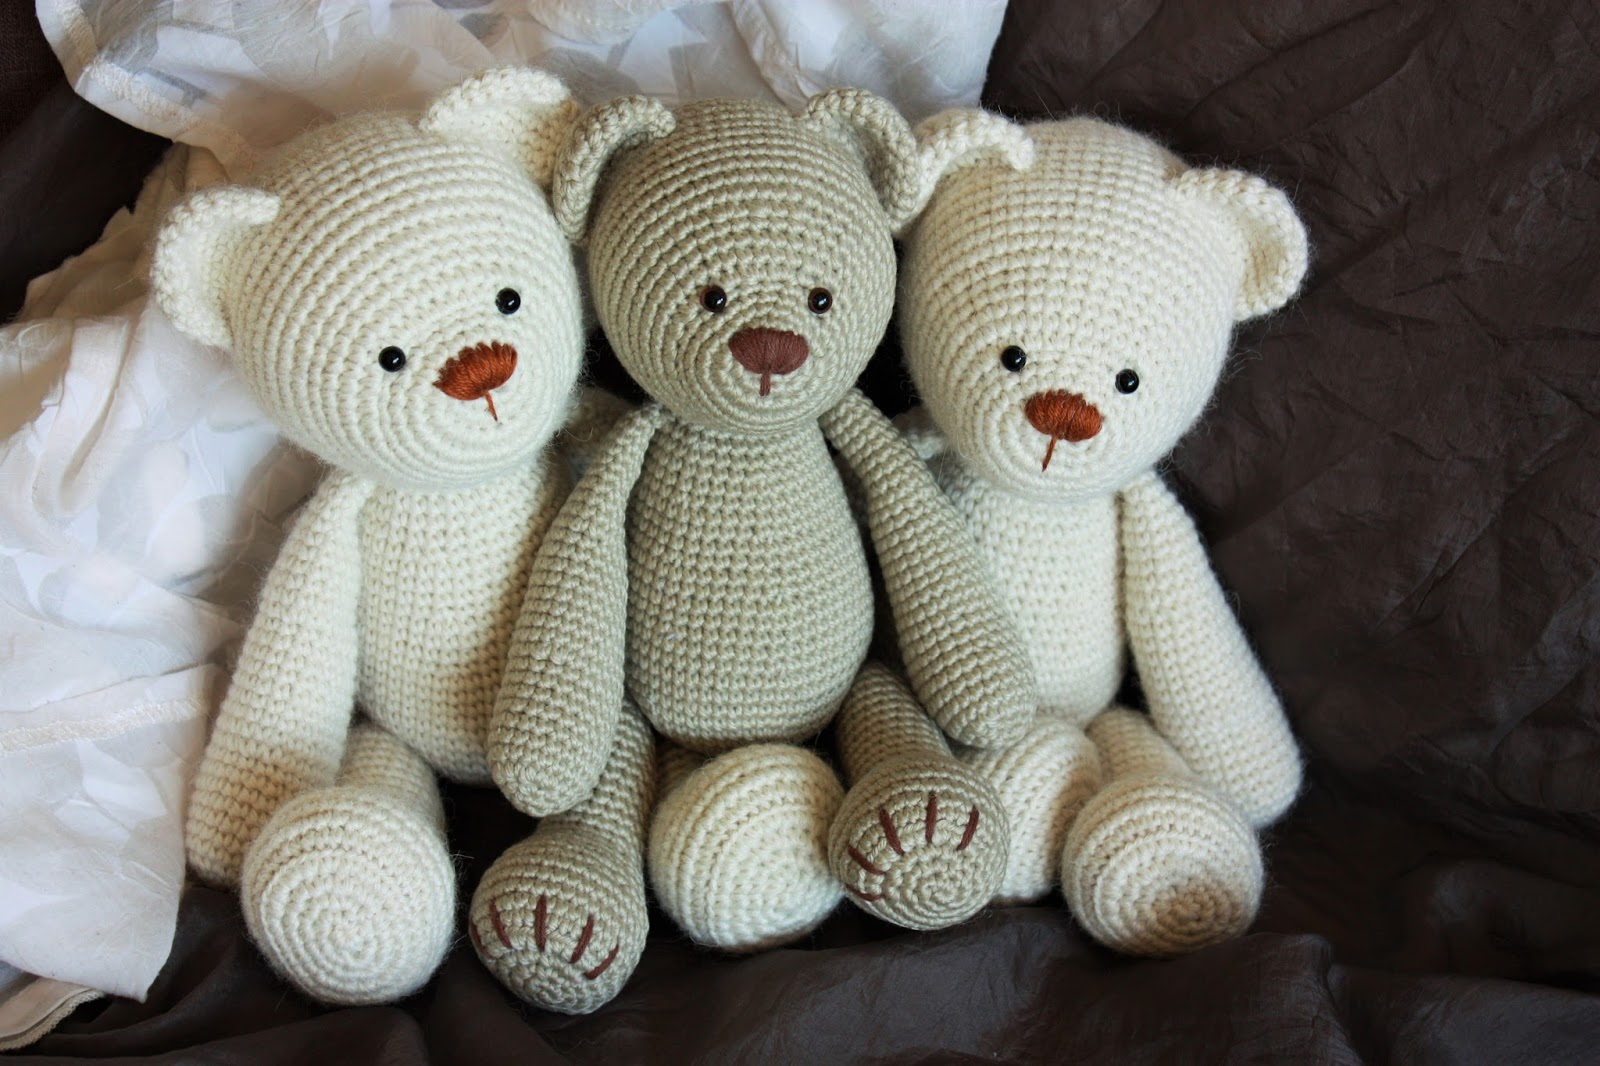 Amigurumi Bear Tutorial : Happyamigurumi: Lucas the Teddy Bear Pattern: New Teddy ...